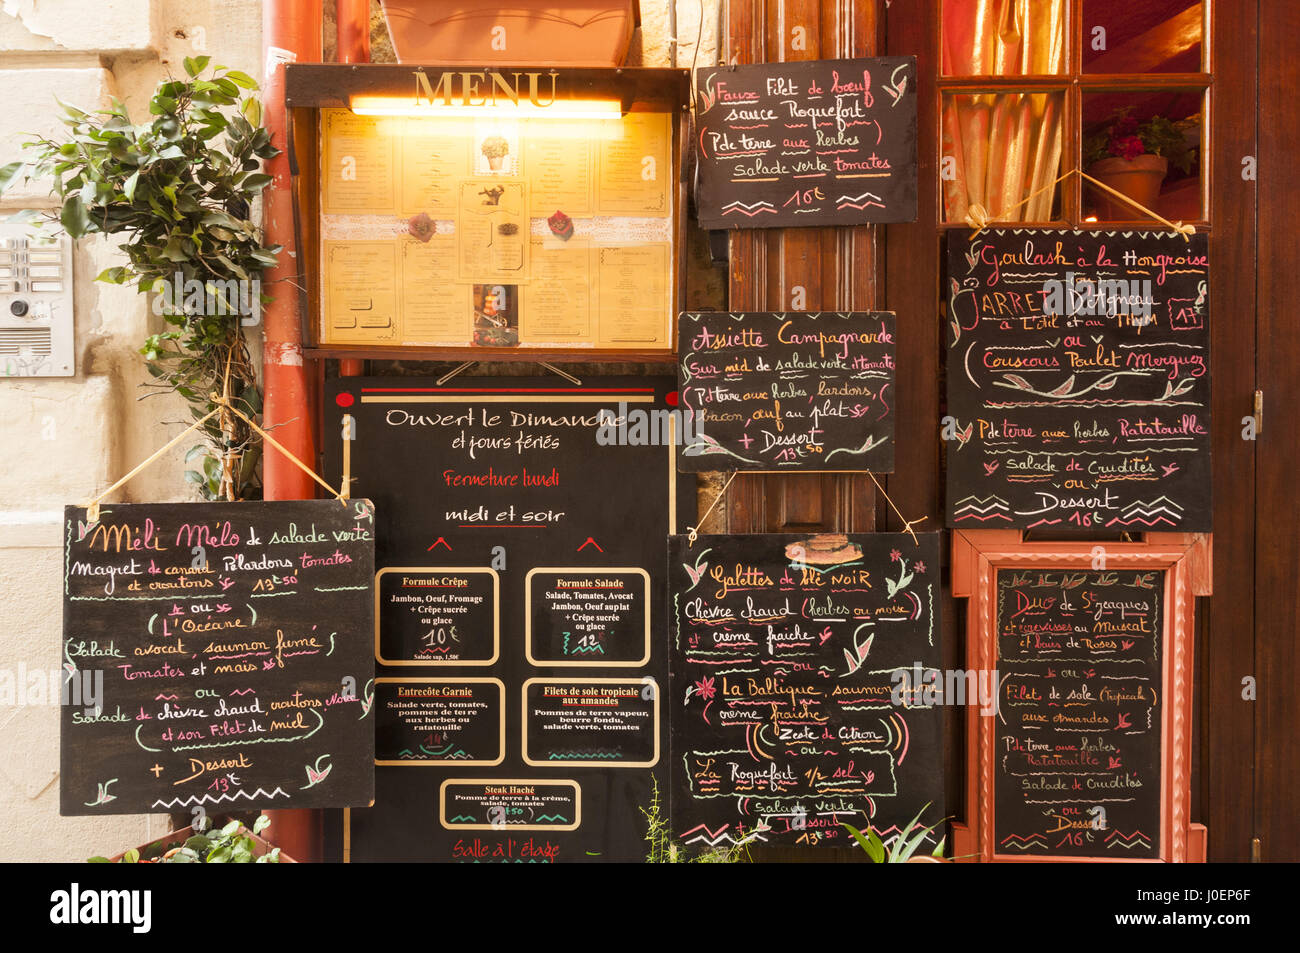 France, Montpellier, restaurant trottoir panneau de menu Photo Stock